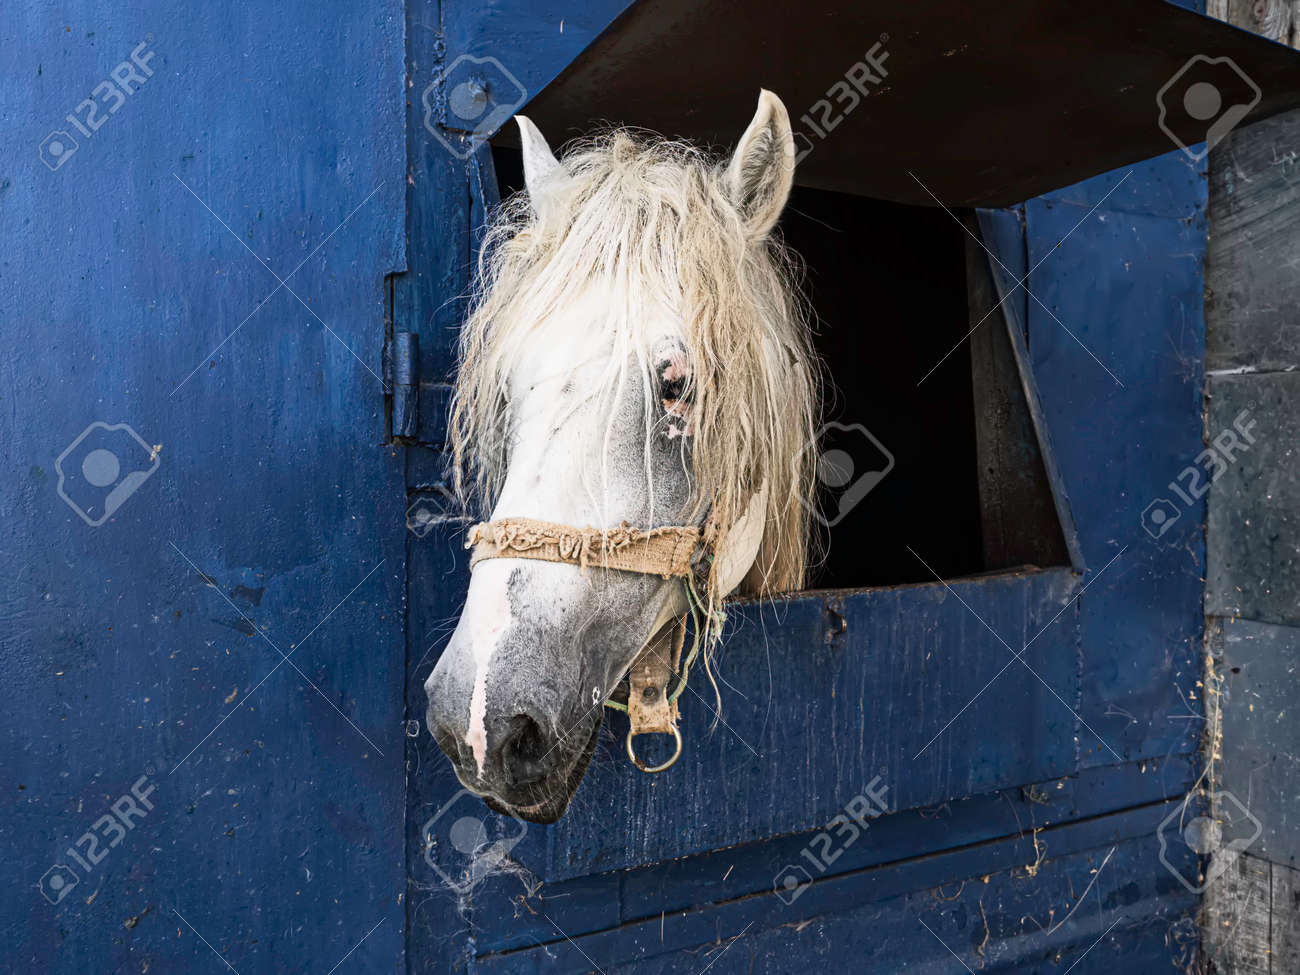 White horse in the stable. Horse in stable looking outside. - 172778661